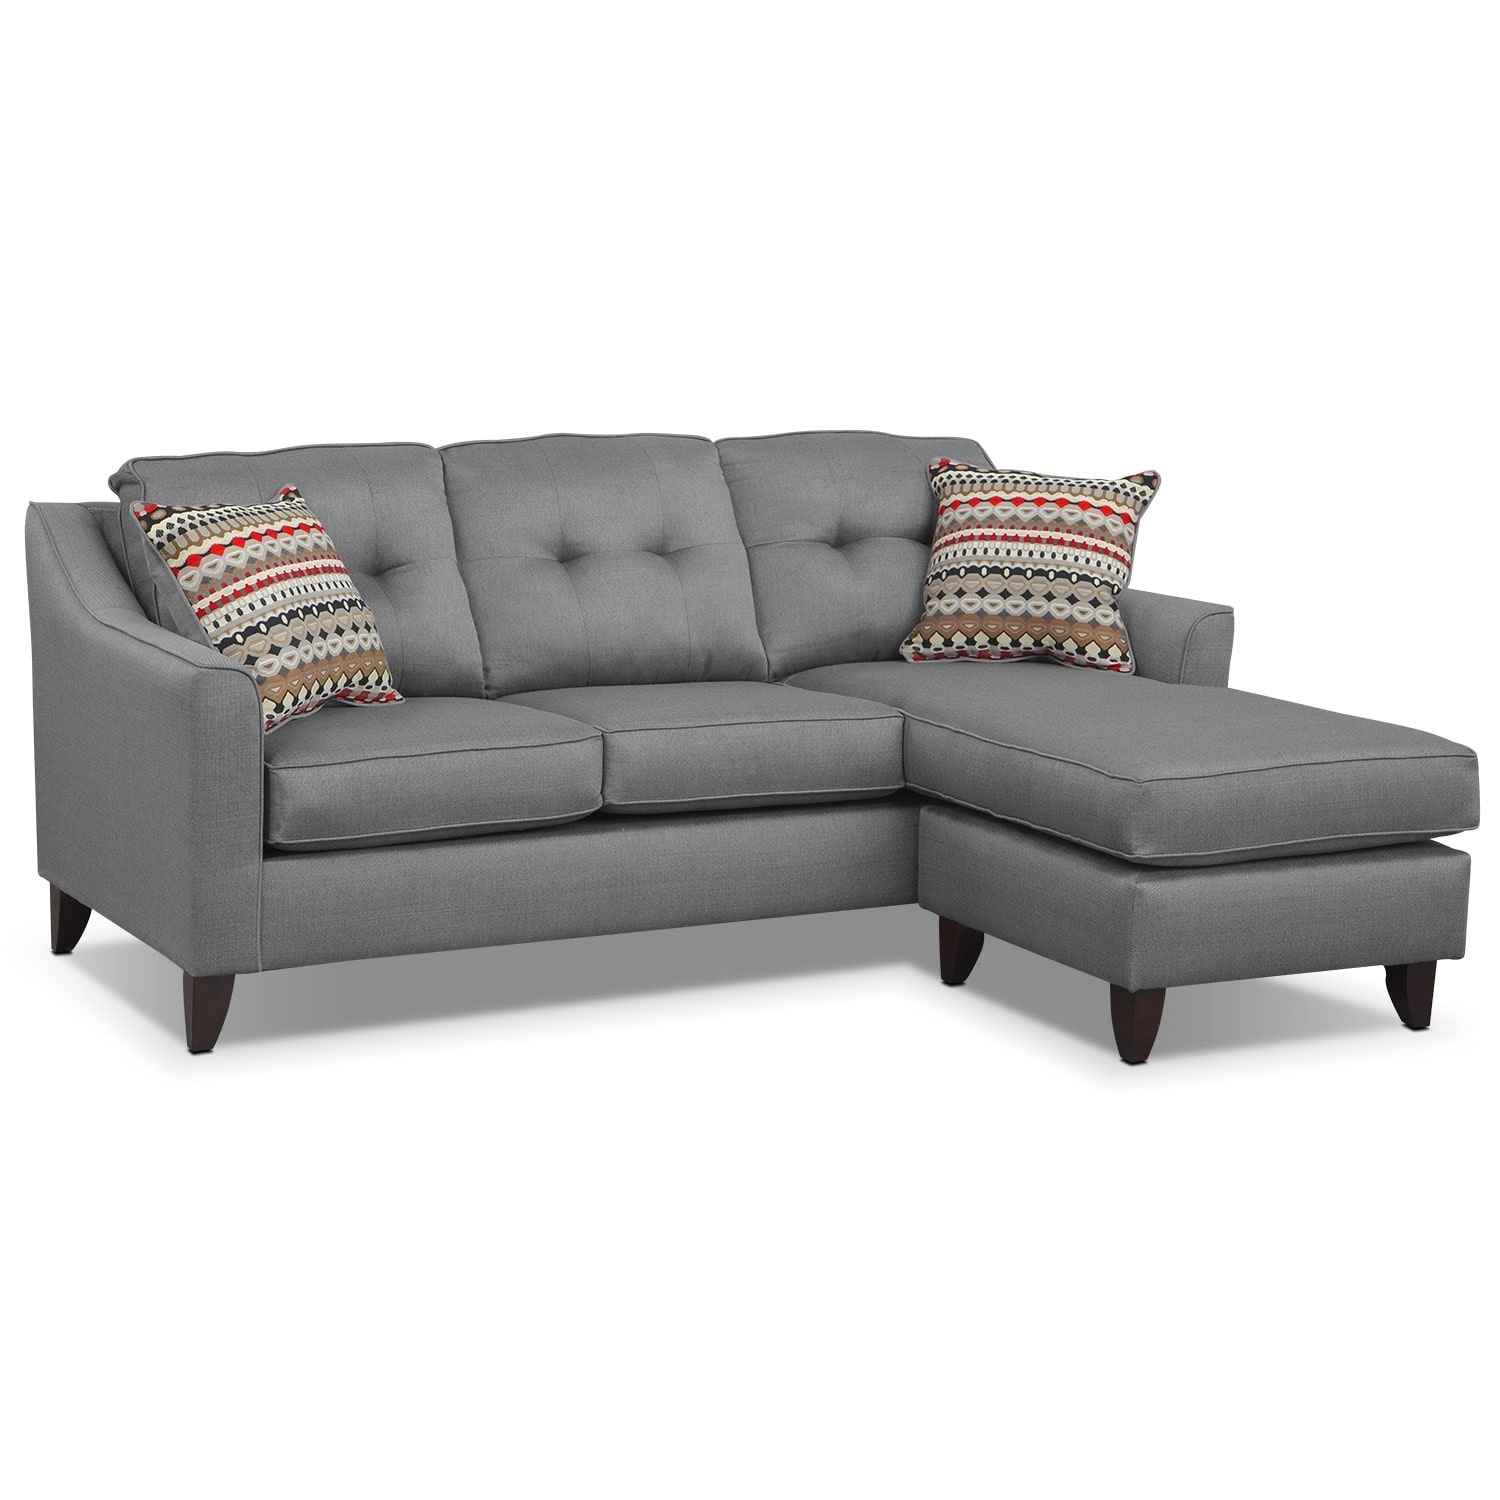 Value City Furniture 2016 Black Friday Ad: Marco Gray Chaise Sofa